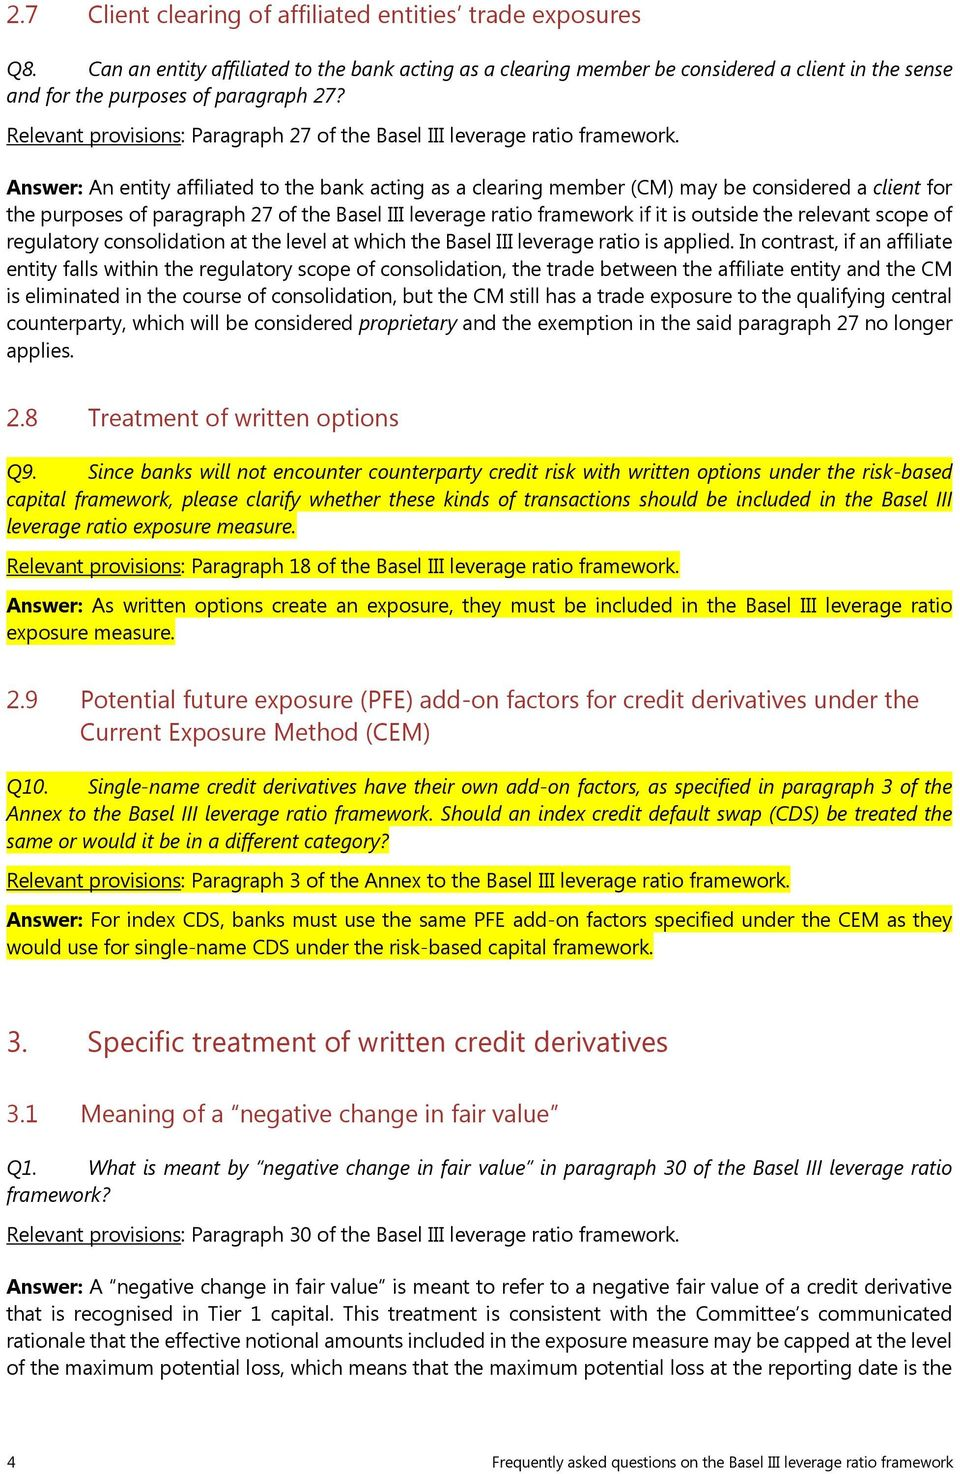 Relevant provisions: Paragraph 27 of the Basel III leverage ratio framework.